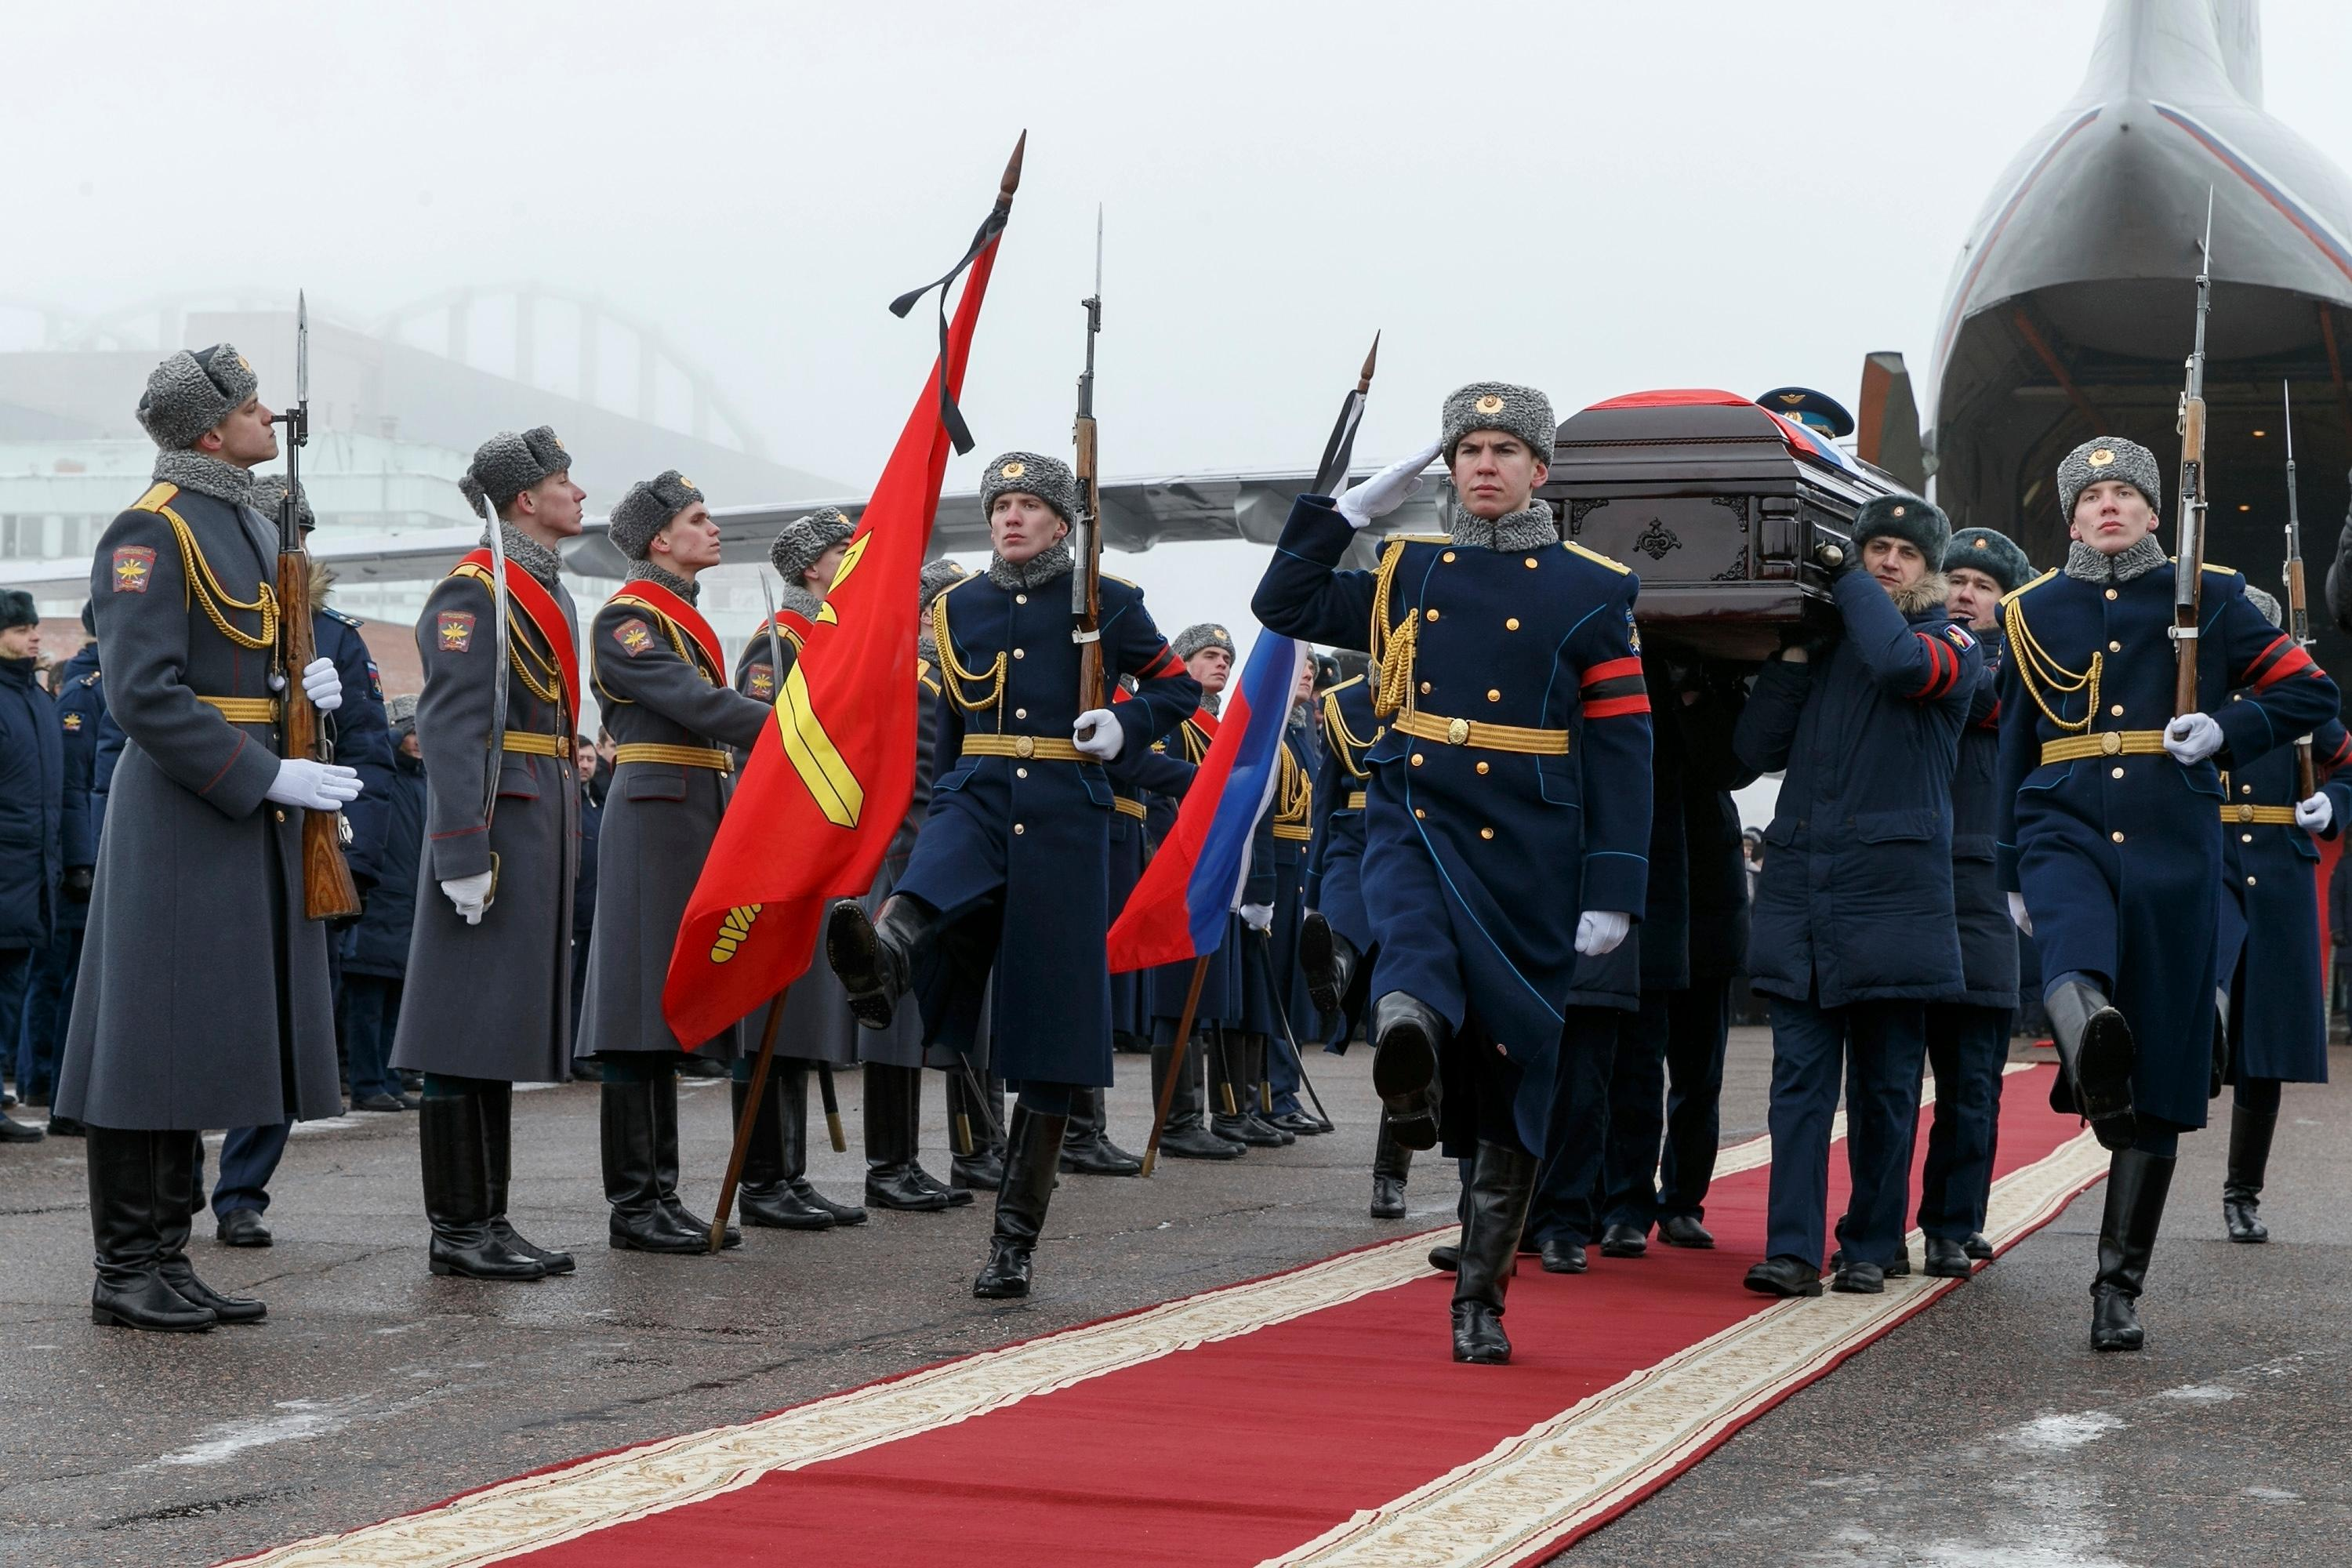 Russian officers carry a coffin with the body of Russian Roman Filipov, the pilot of the Su-25 jet who ejected after Syrian insurgents shot down his plane traded fire with militants on the ground and then blew himself up to avoid being captured, during a funeral service in Voronezh, Russia, Thursday, Feb. 8, 2018. (Vadim Savitsky/Pool Photo via AP)